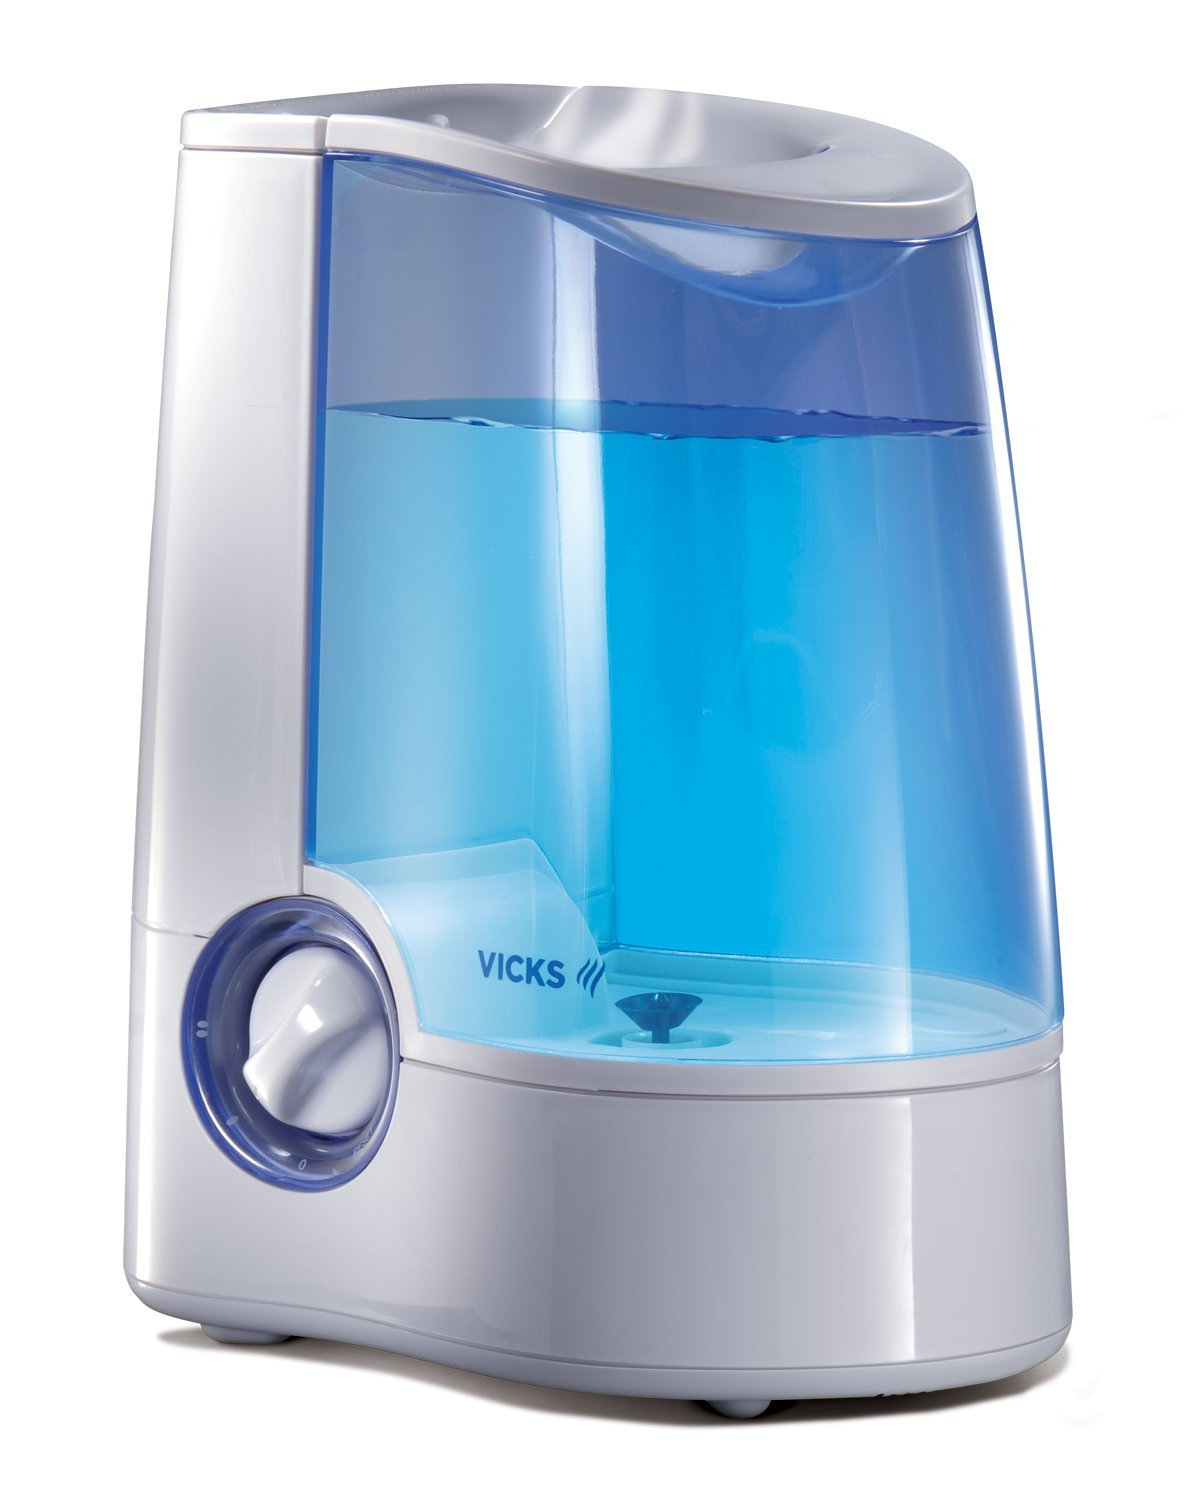 Live and Breathe Healthy with the Vicks Warm Mist Humidifier